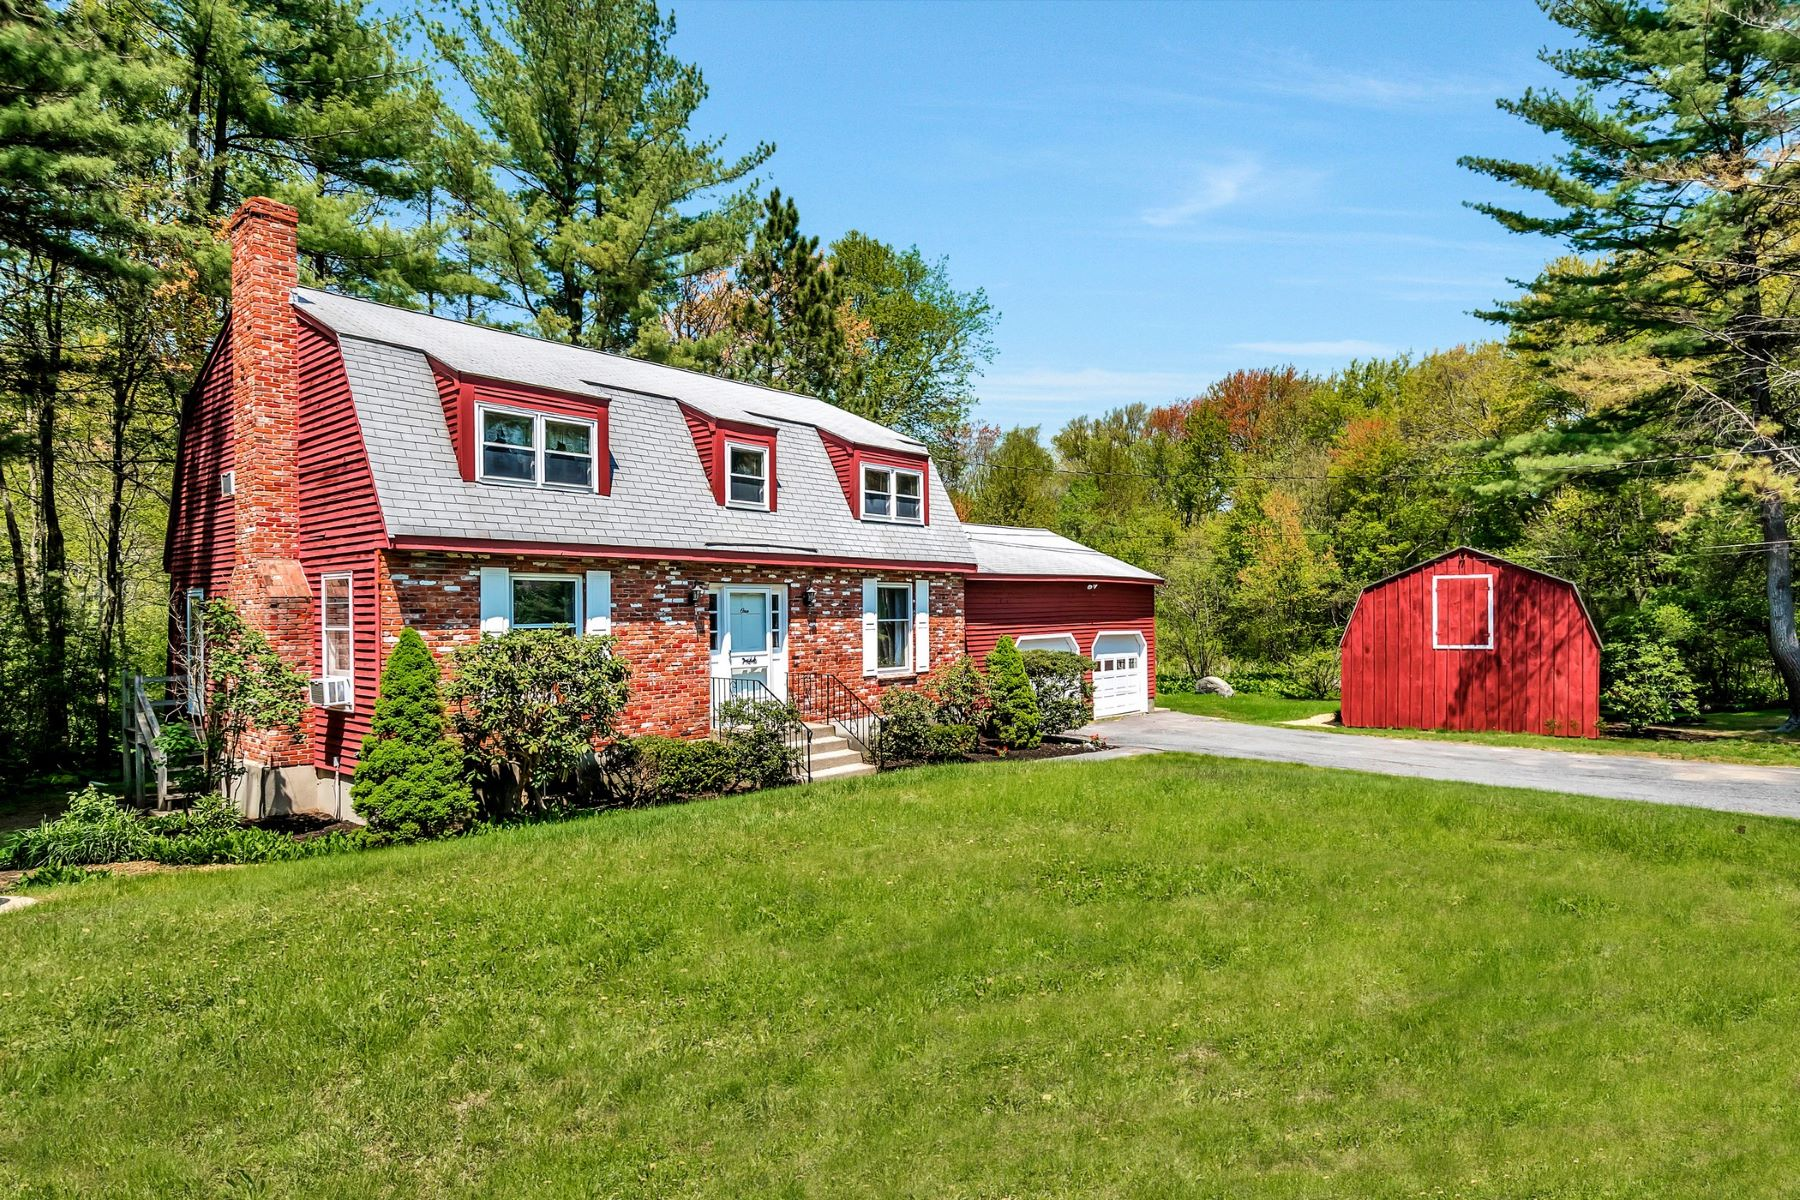 Single Family Home for Sale at Colonial Set on 6.97 Tranquil Acres 1 Seneca Court Acton, Massachusetts, 01720 United States